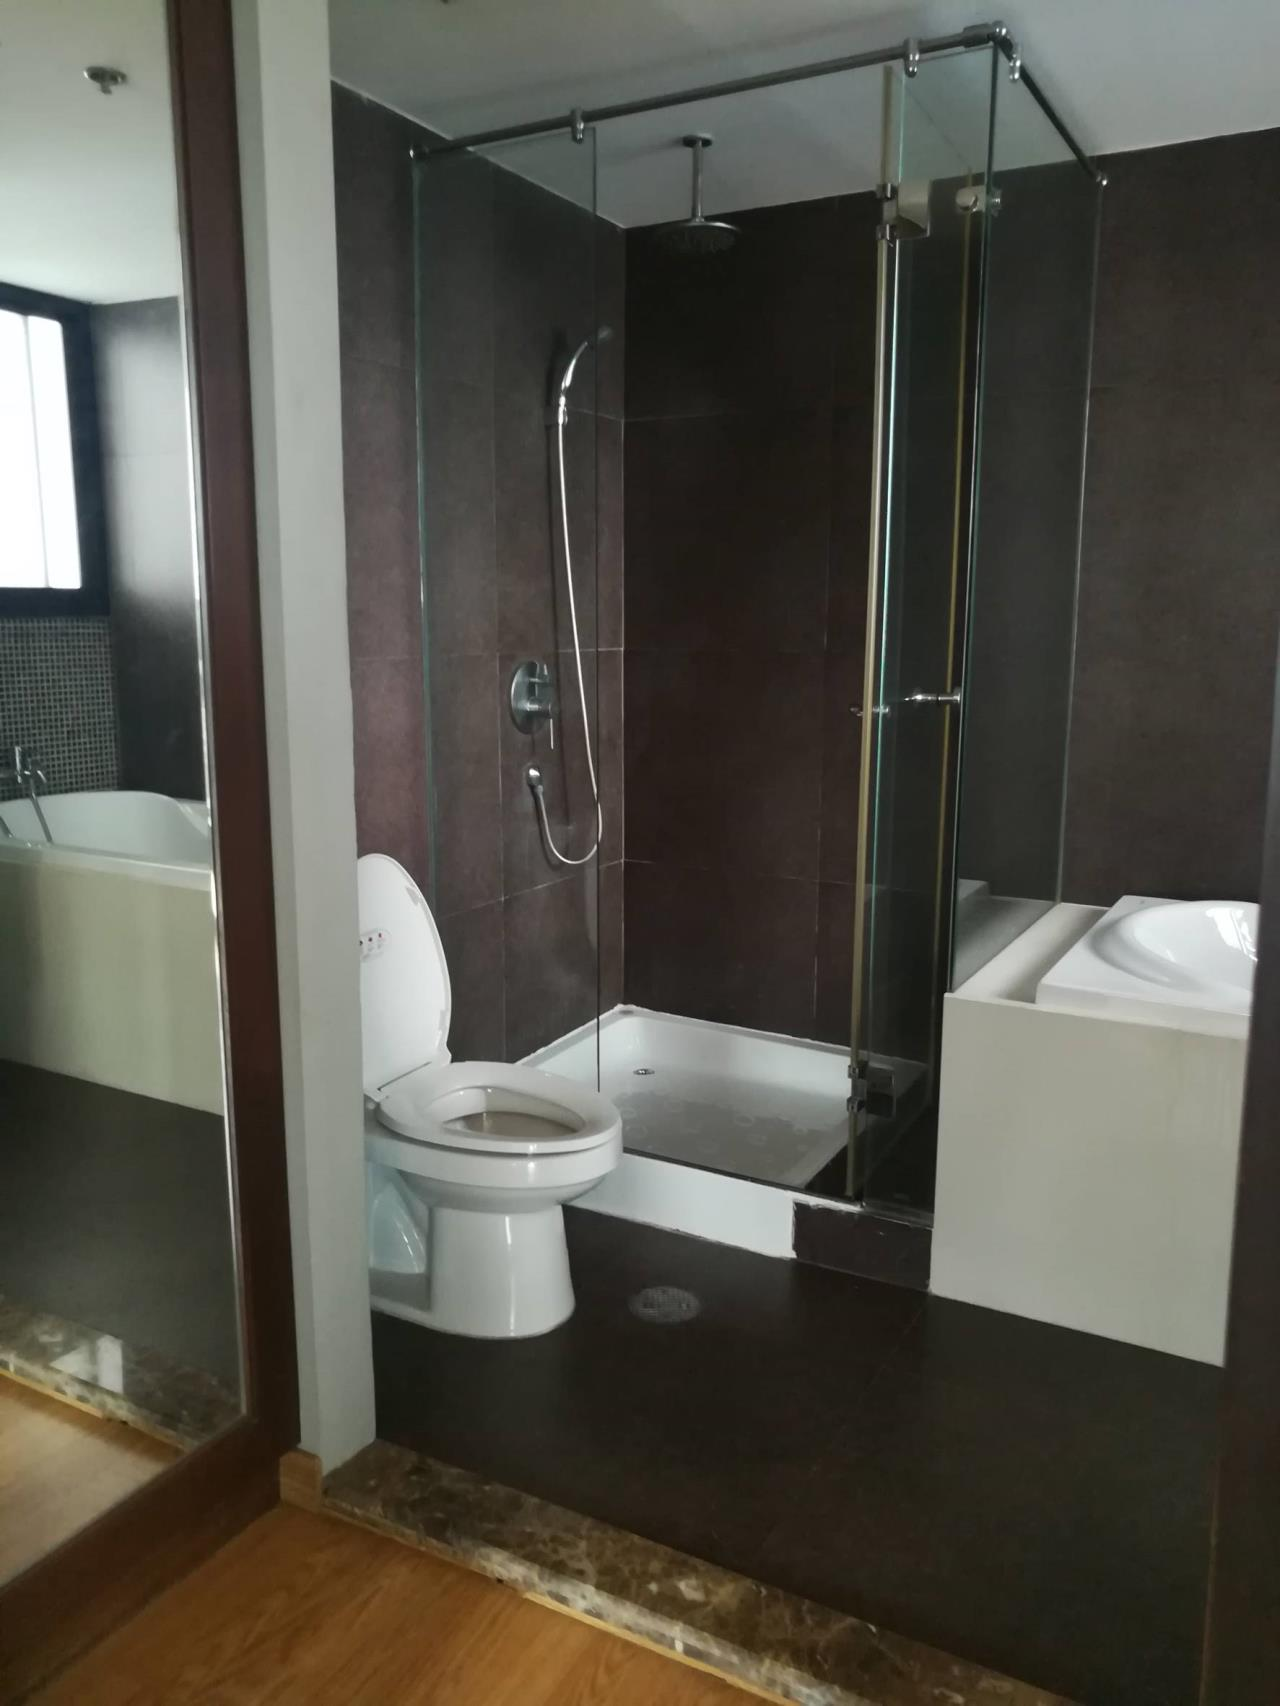 Professional One Service Agency's Beautiful 3 bedroom condo 120 sq.m BTS Thonglo 5